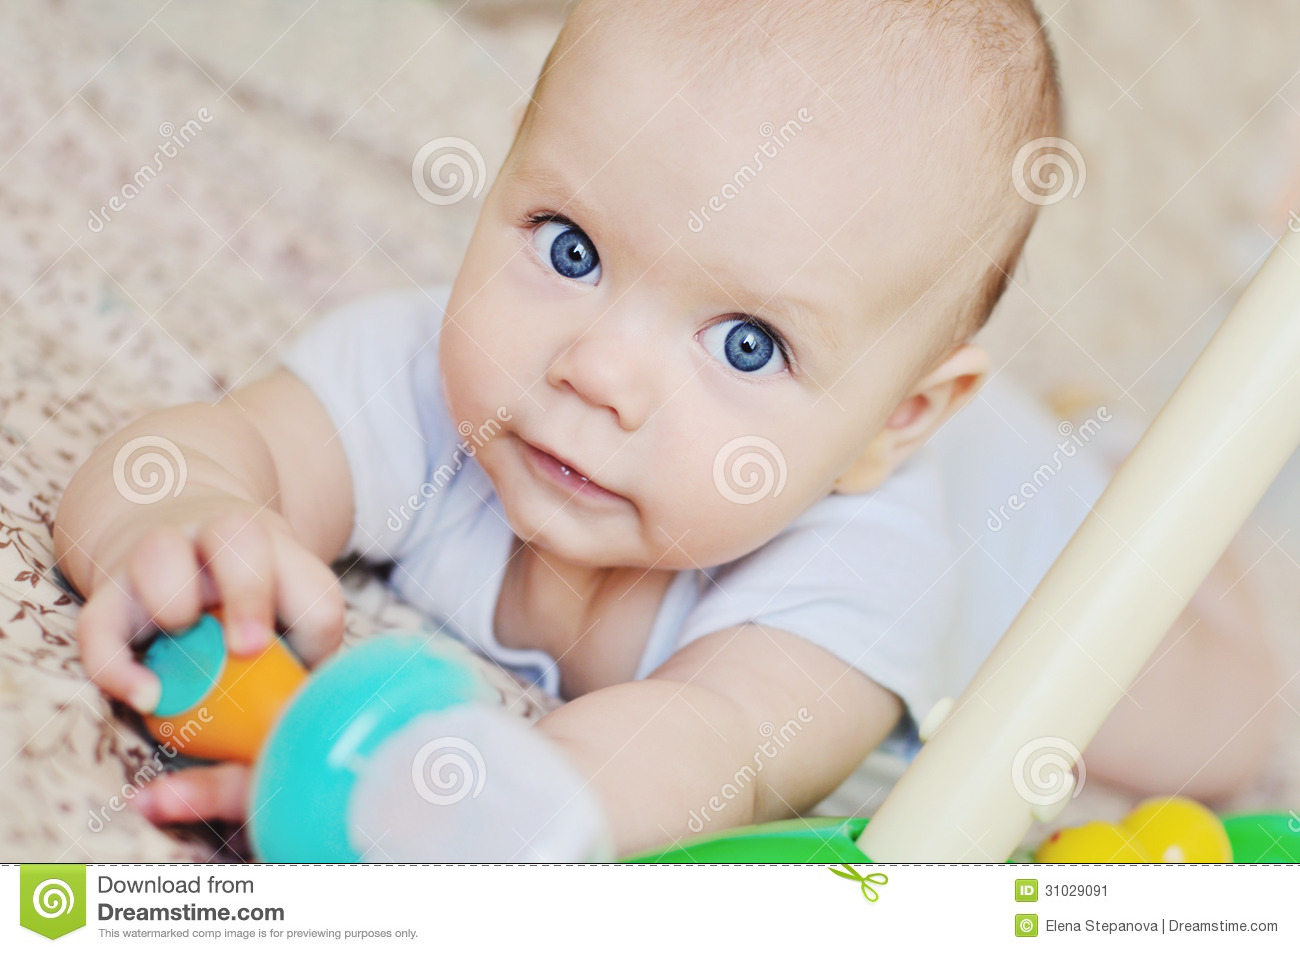 Blue eyed baby with toys